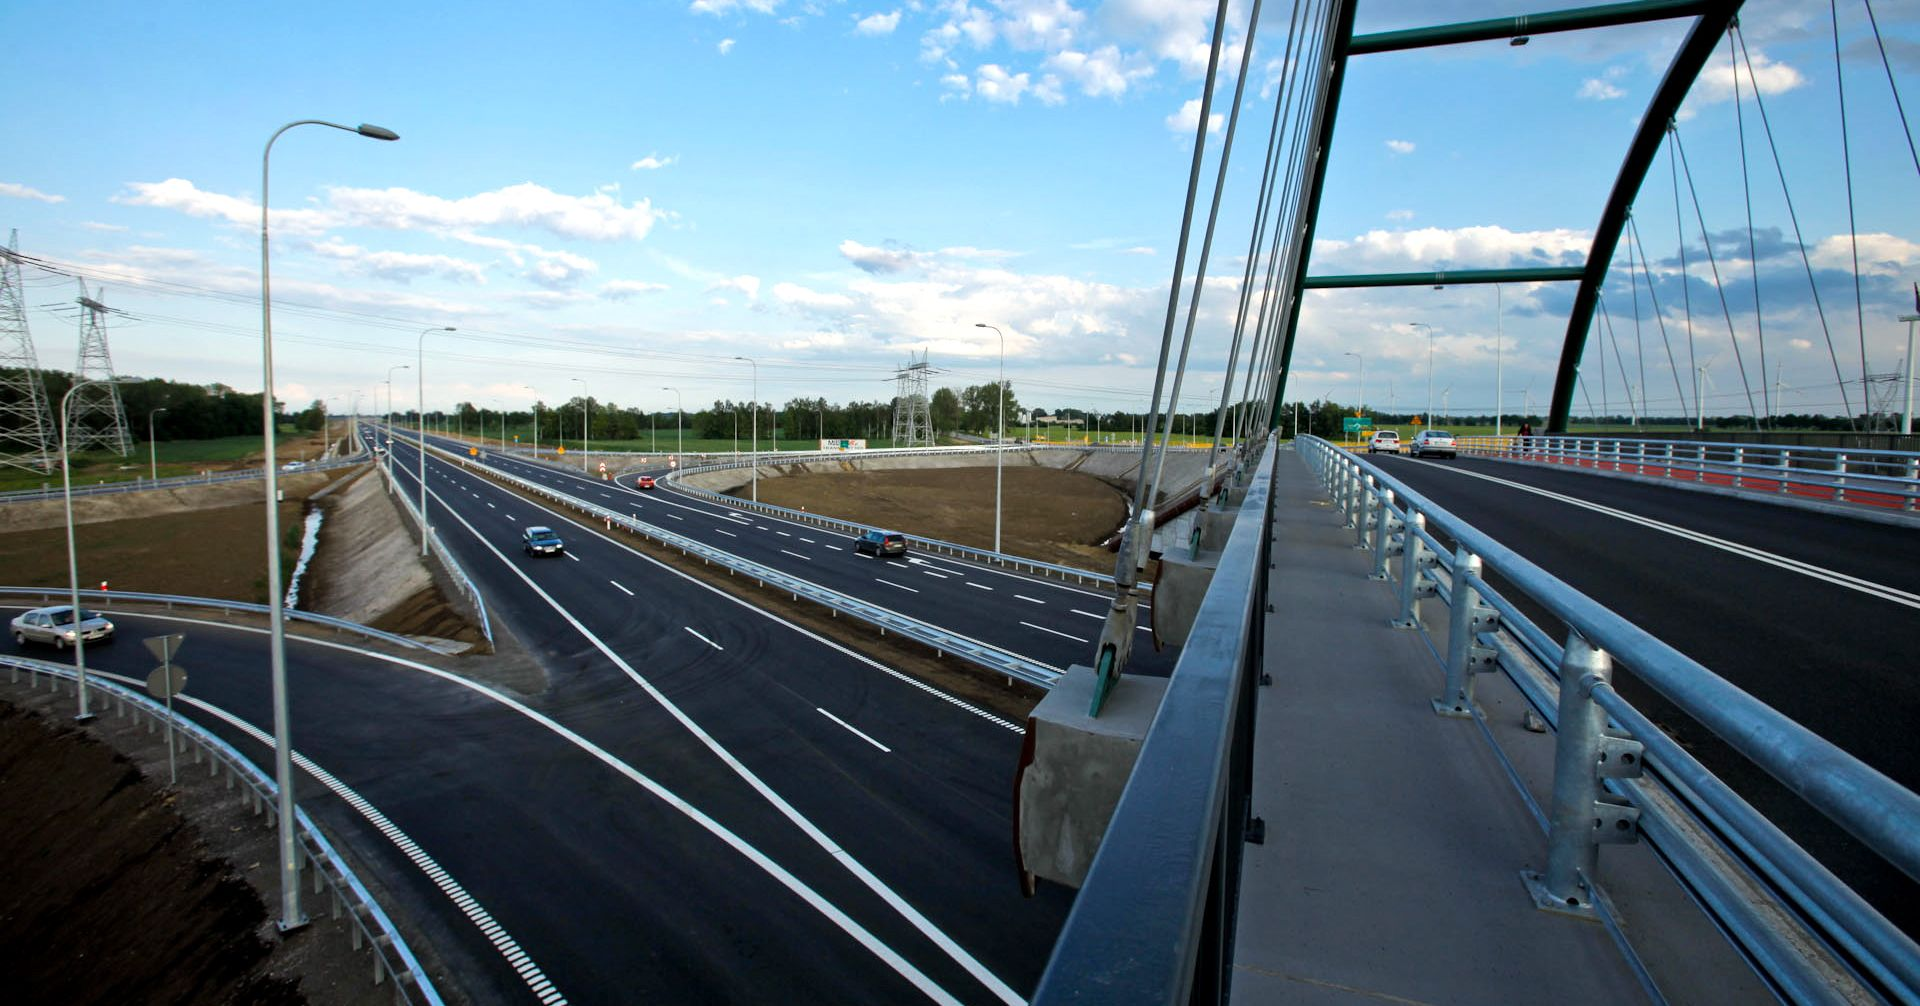 Extensive expertise in road construction and infrastructure by PORR in Poland – for example on the S7 bypass in Gdansk shown here.